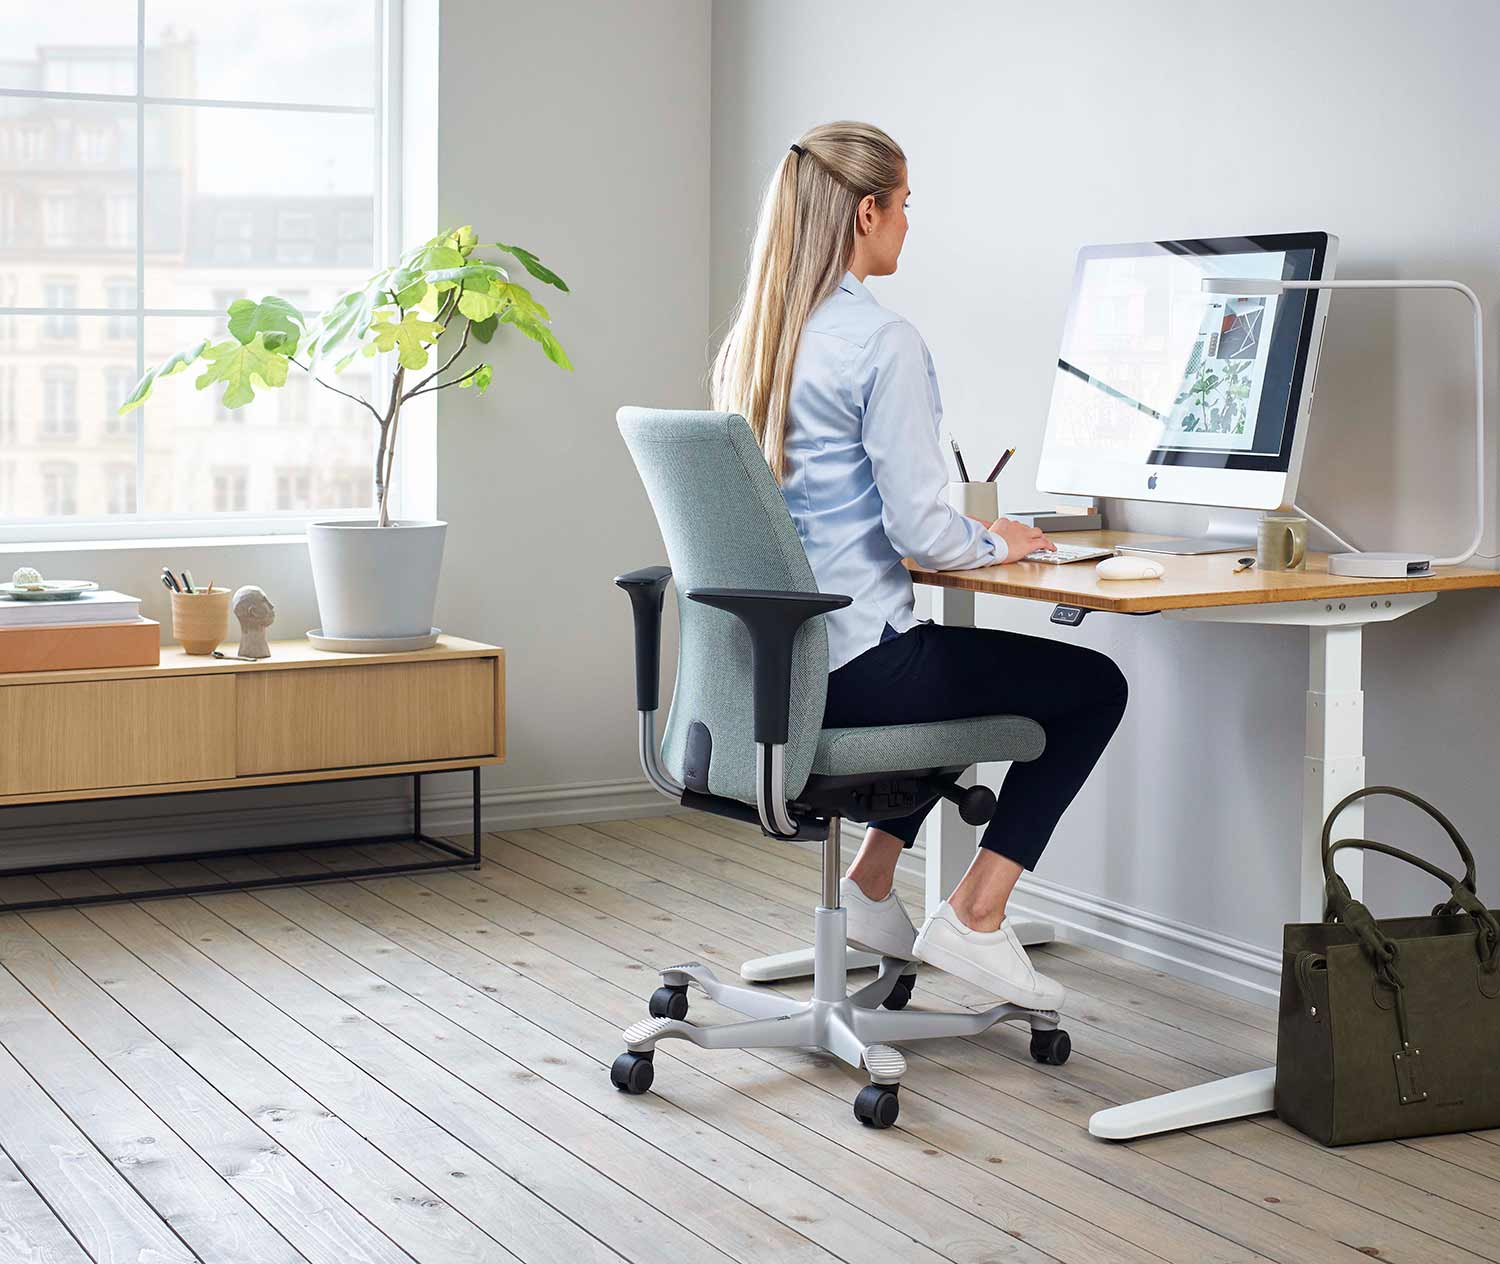 HÅG Creed home office chair for working form home ergonomics and wellbeing breen desk chair for women and men